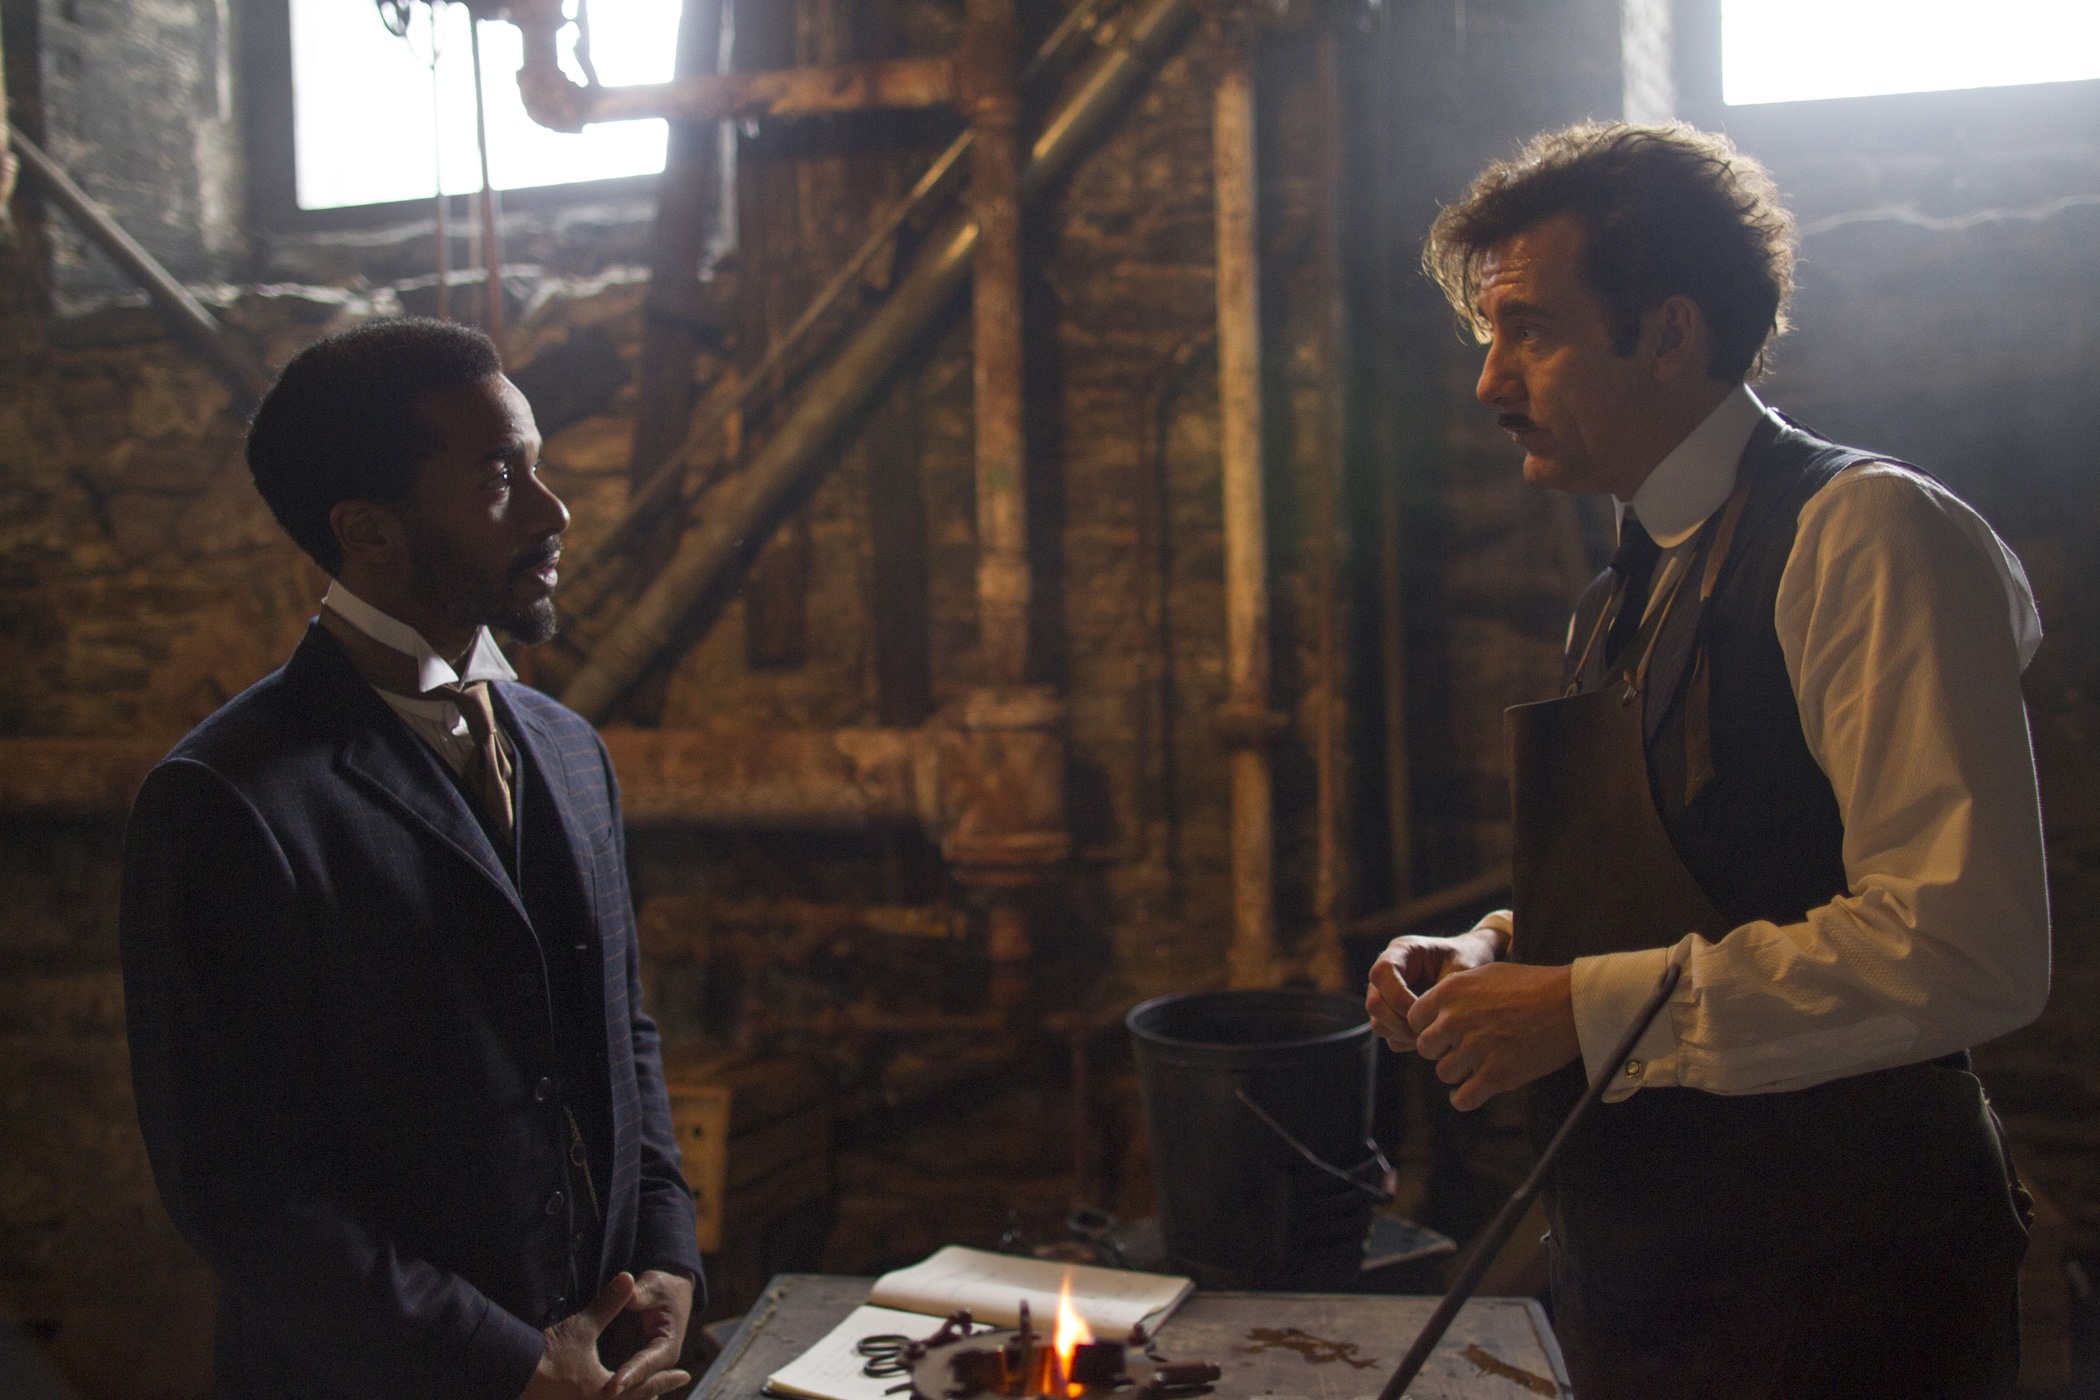 Knick clive owen andre holland